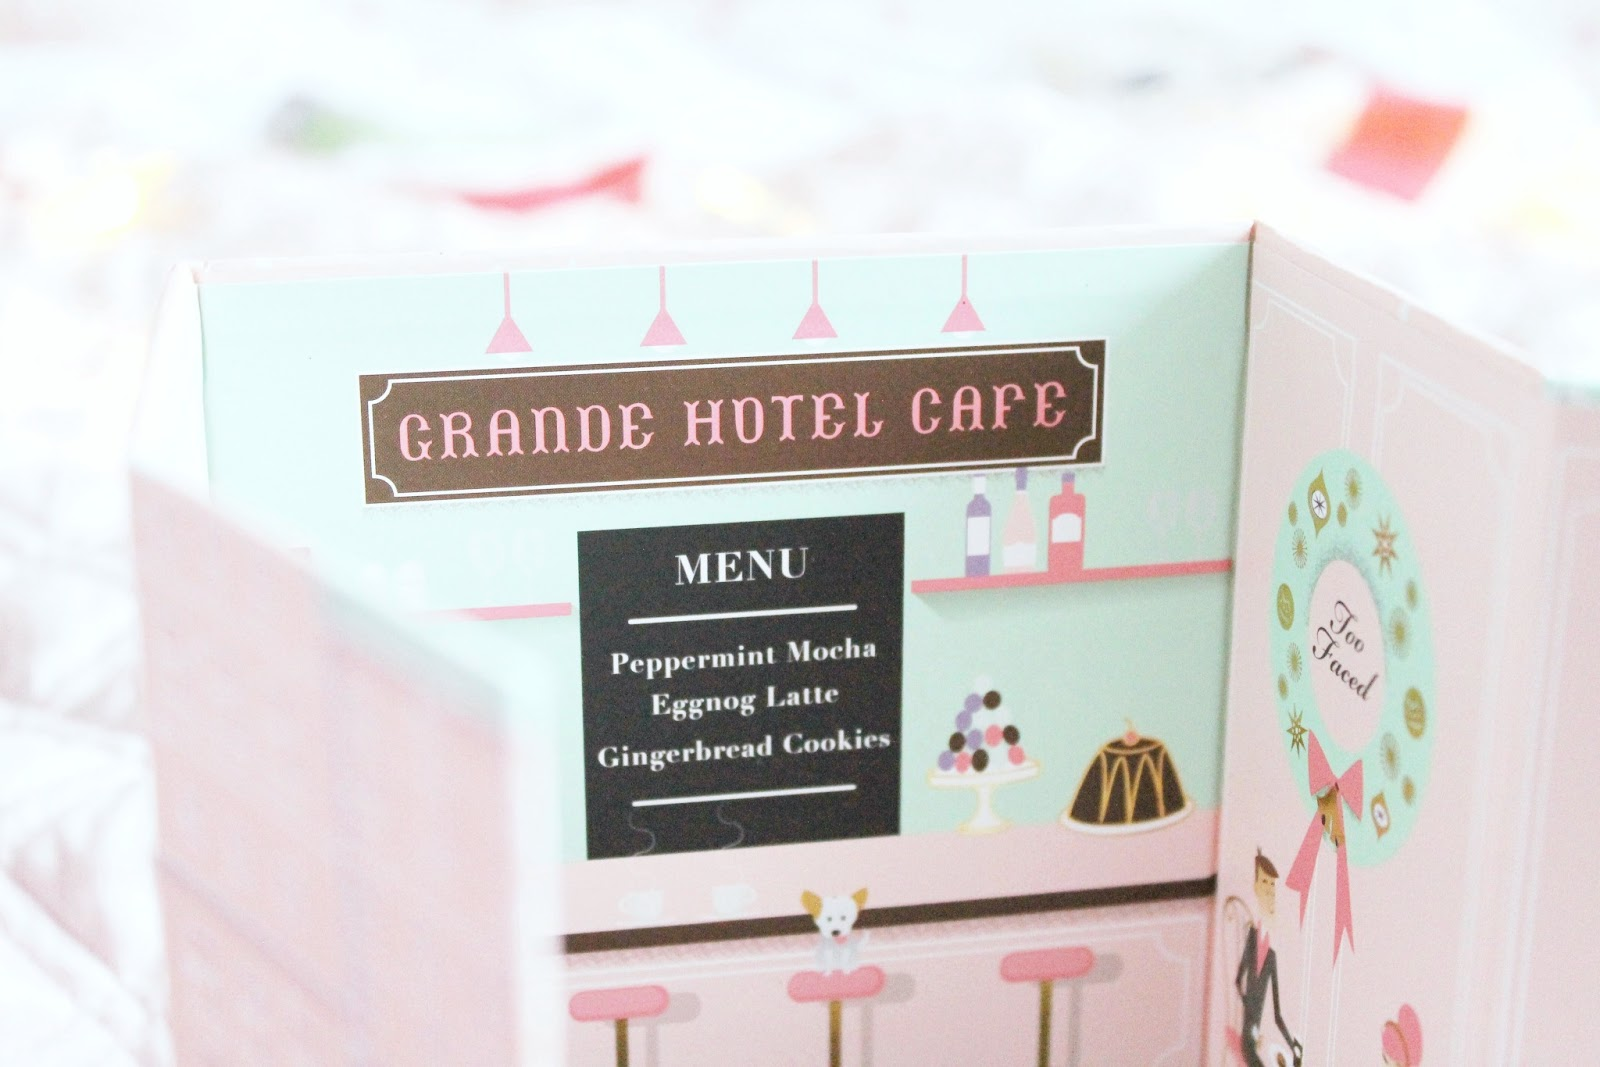 Too Faced Grande Hotel Cafe swatches and palettes review